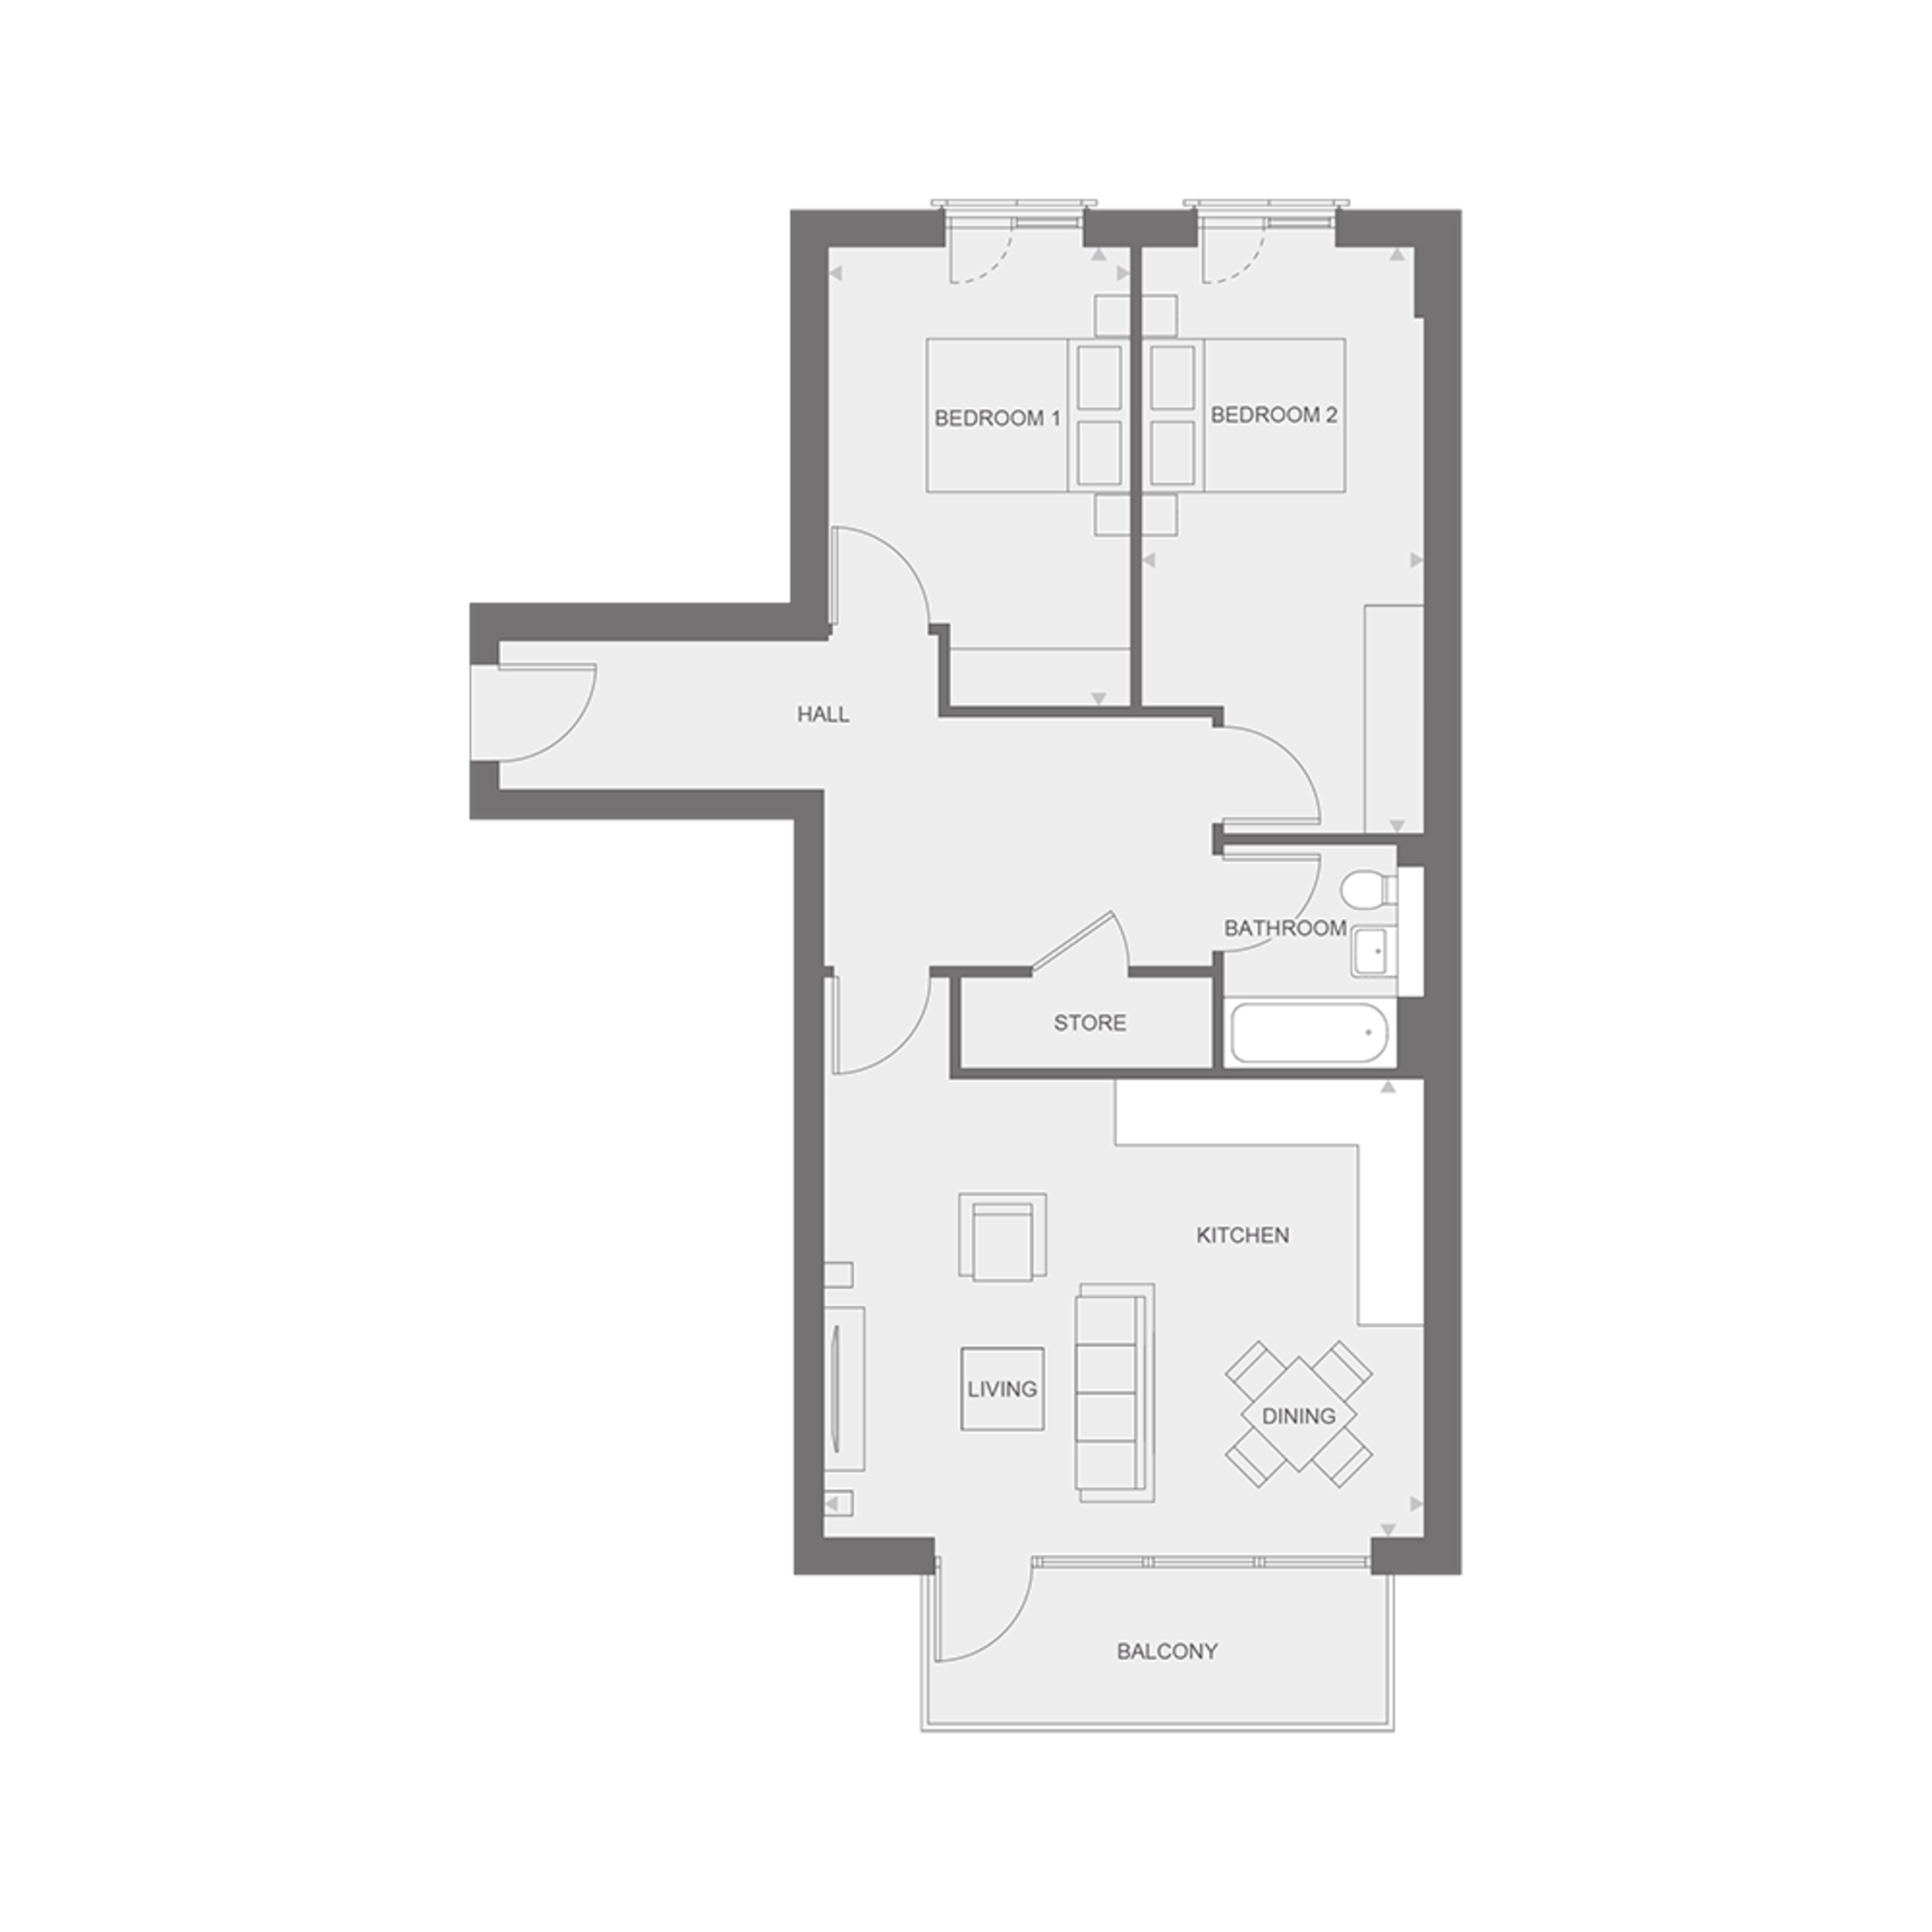 Insignia Place - Two bedroom apartment - Type B